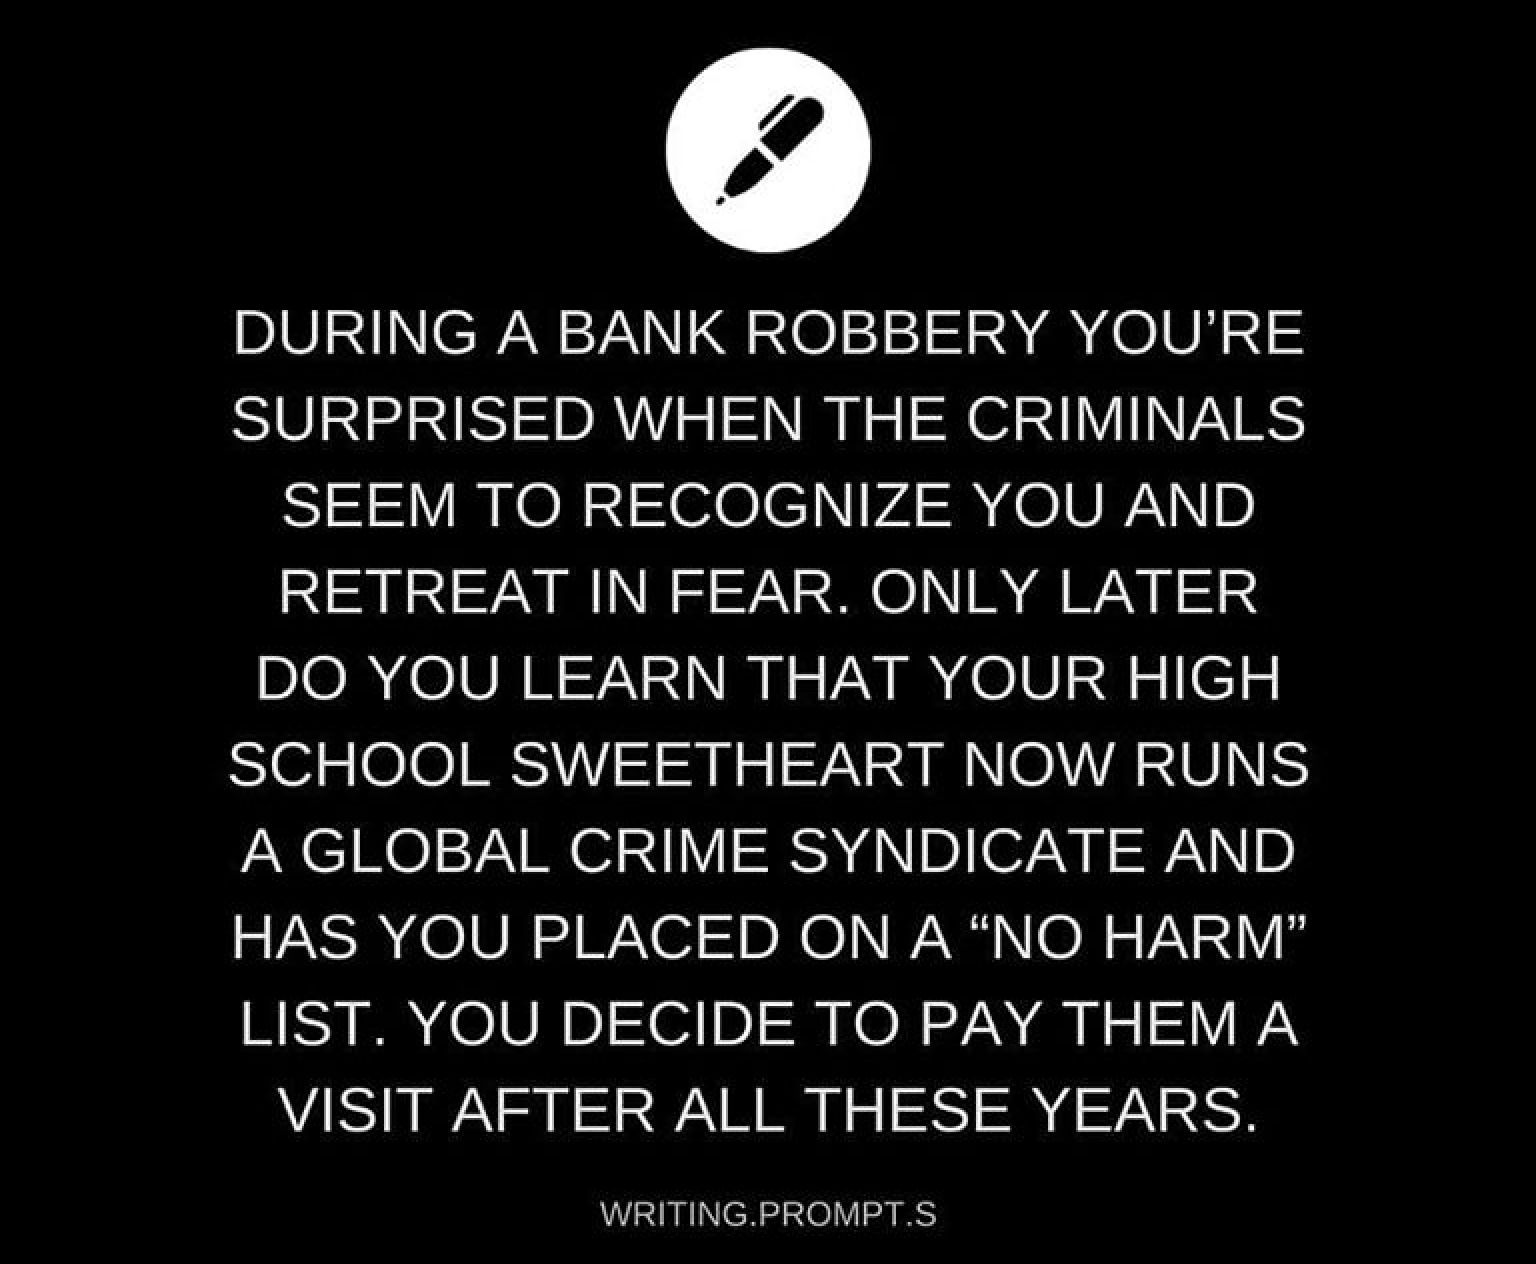 Essay bank robbery creative writing